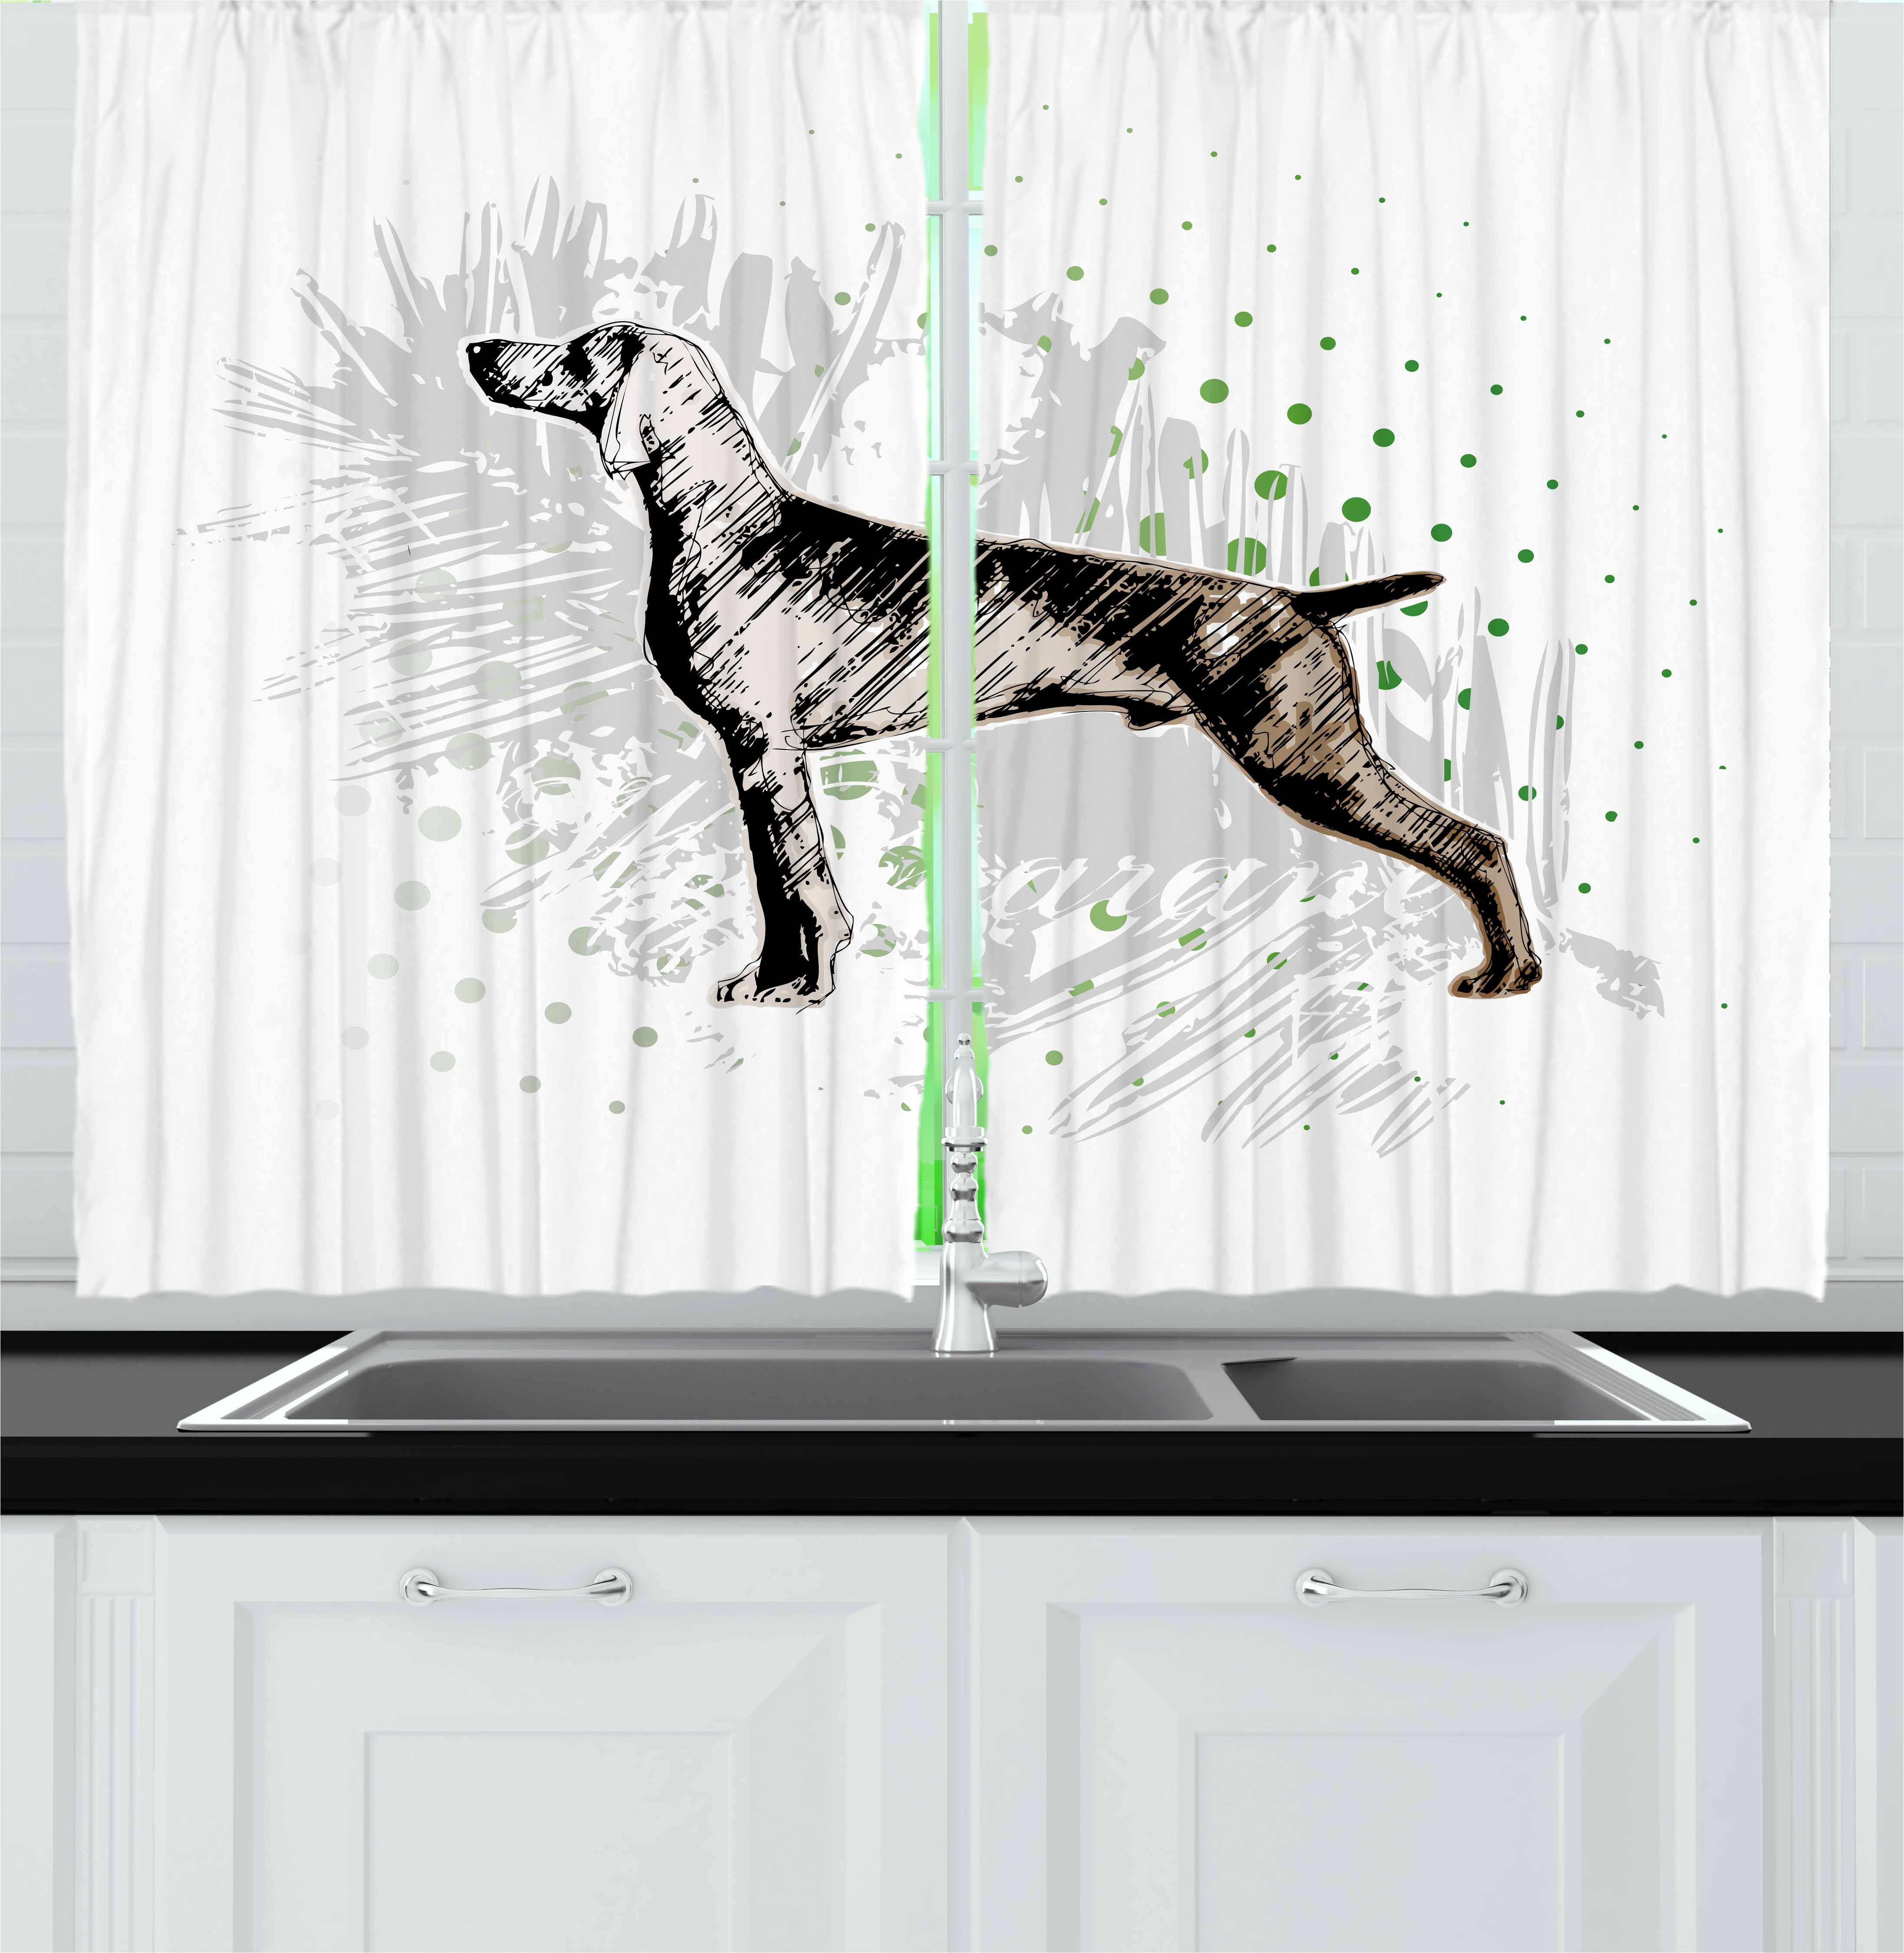 Hunting Curtains 2 Panels Set, Sketch of the Weimaraner Dog Canine on Grungy Abstract Design Background, Window Drapes for Living Room Bedroom, 55W X 39L Inches, Black Grey Green, by Ambesonne